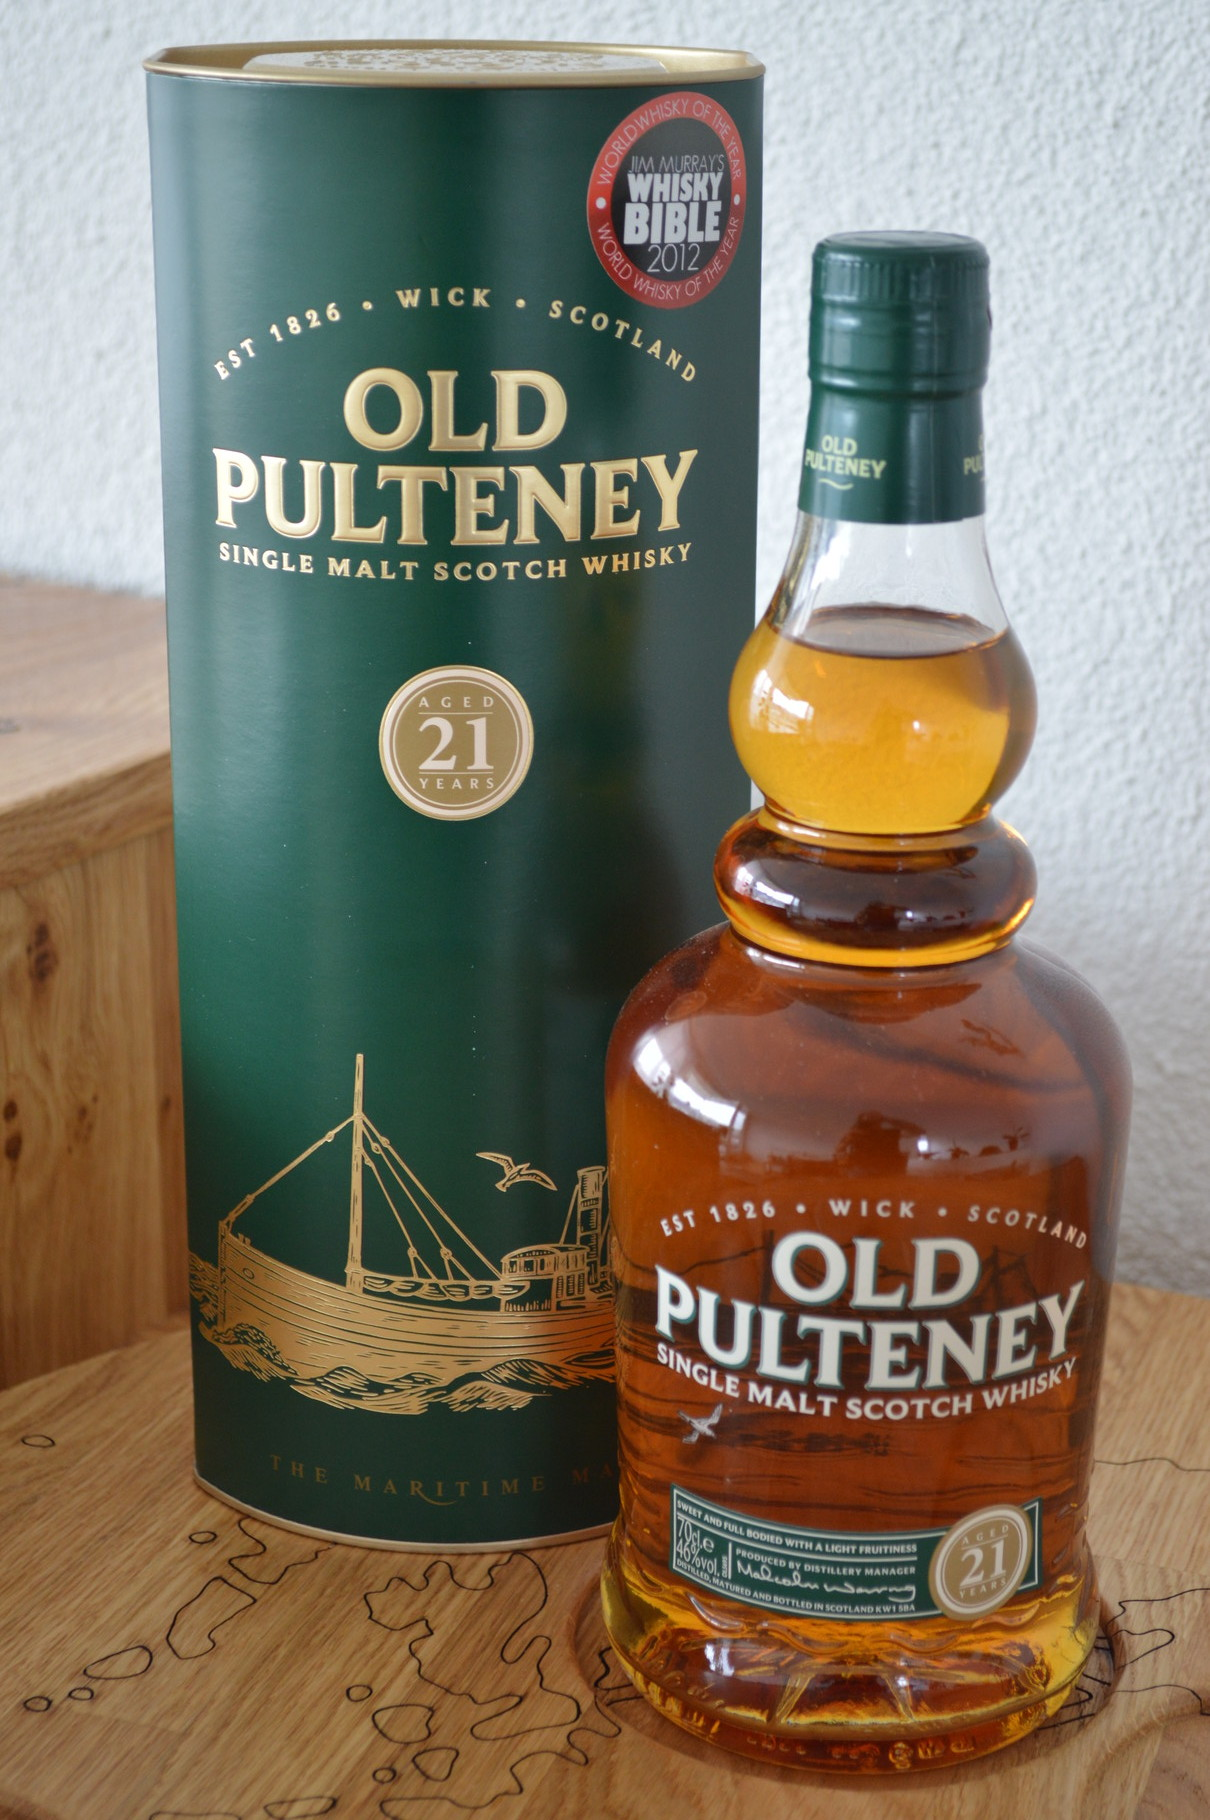 HIGHLANDS - Old Pulteney* - Aged: 21 years - 70cl - 46%